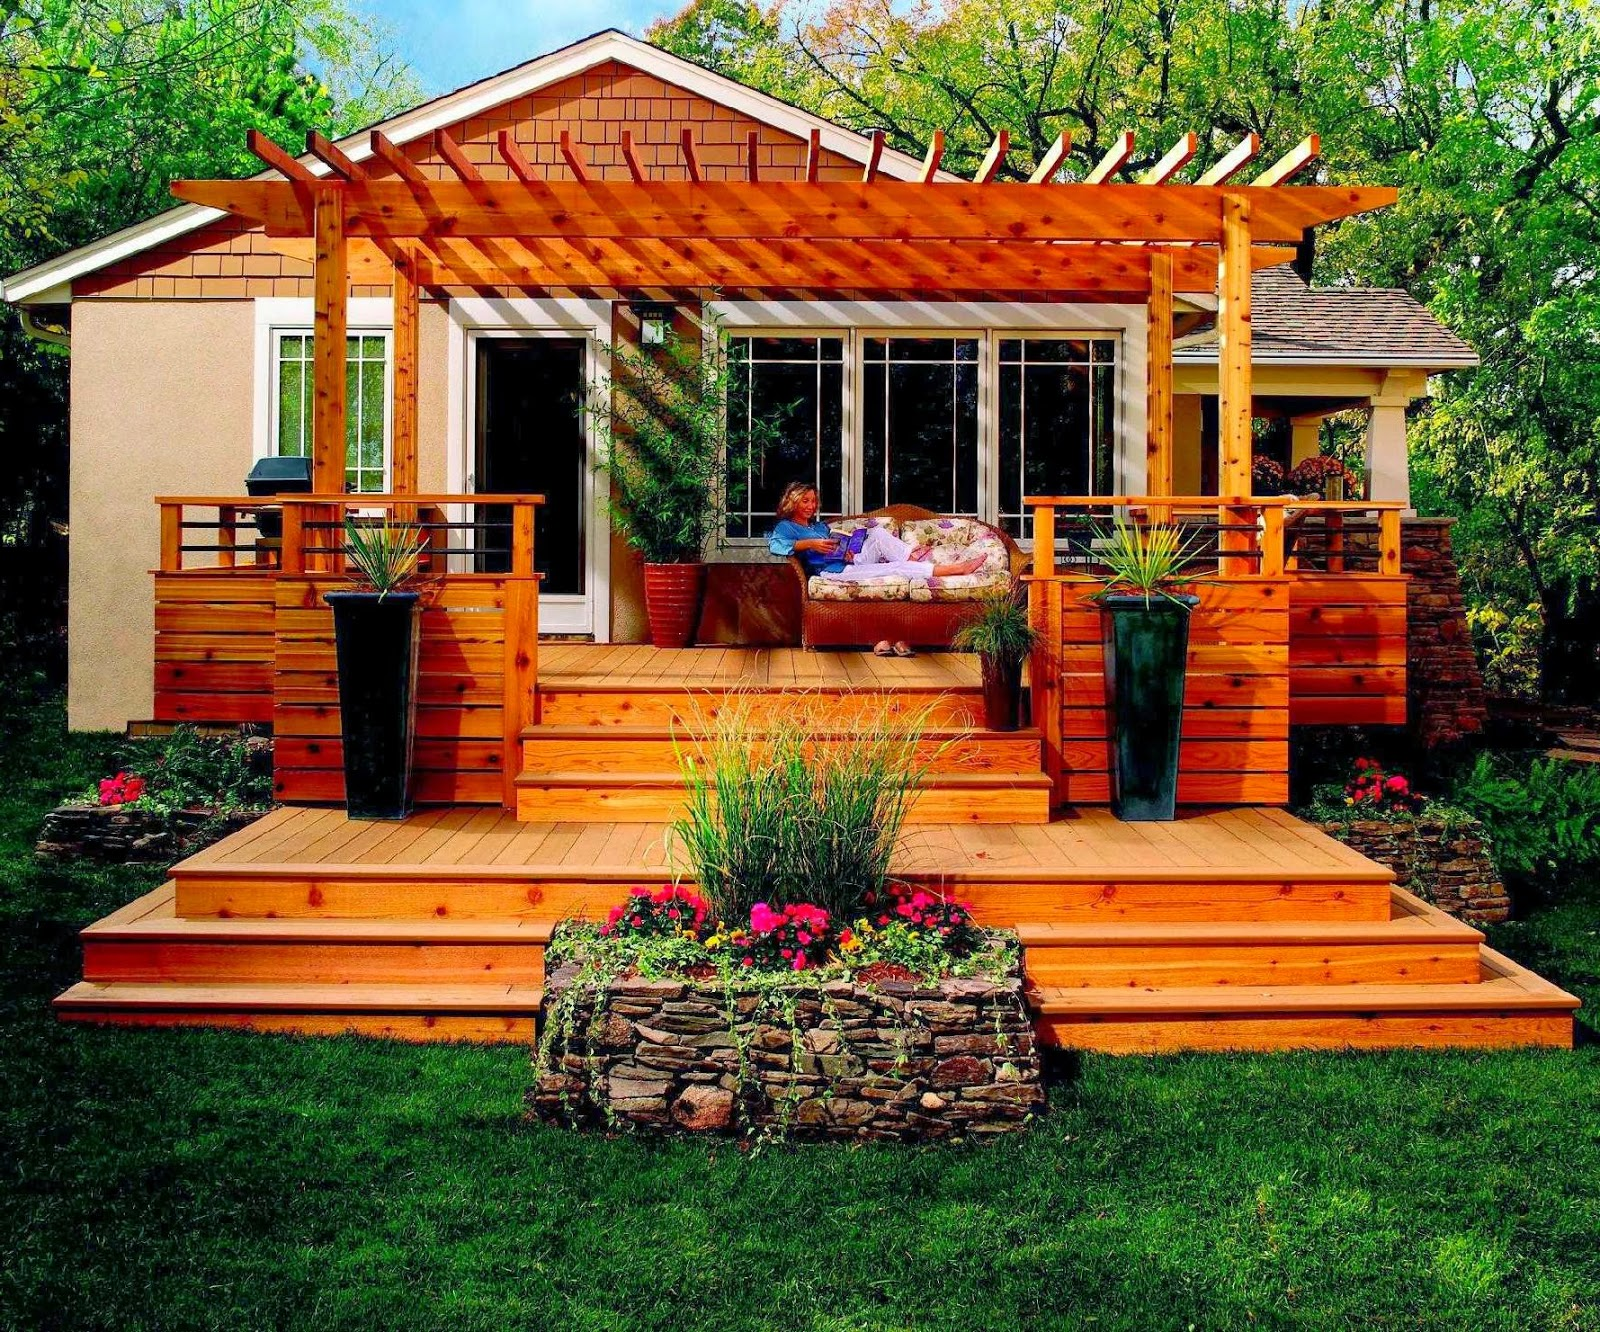 Awesome backyard deck design for Deck designs for small backyards